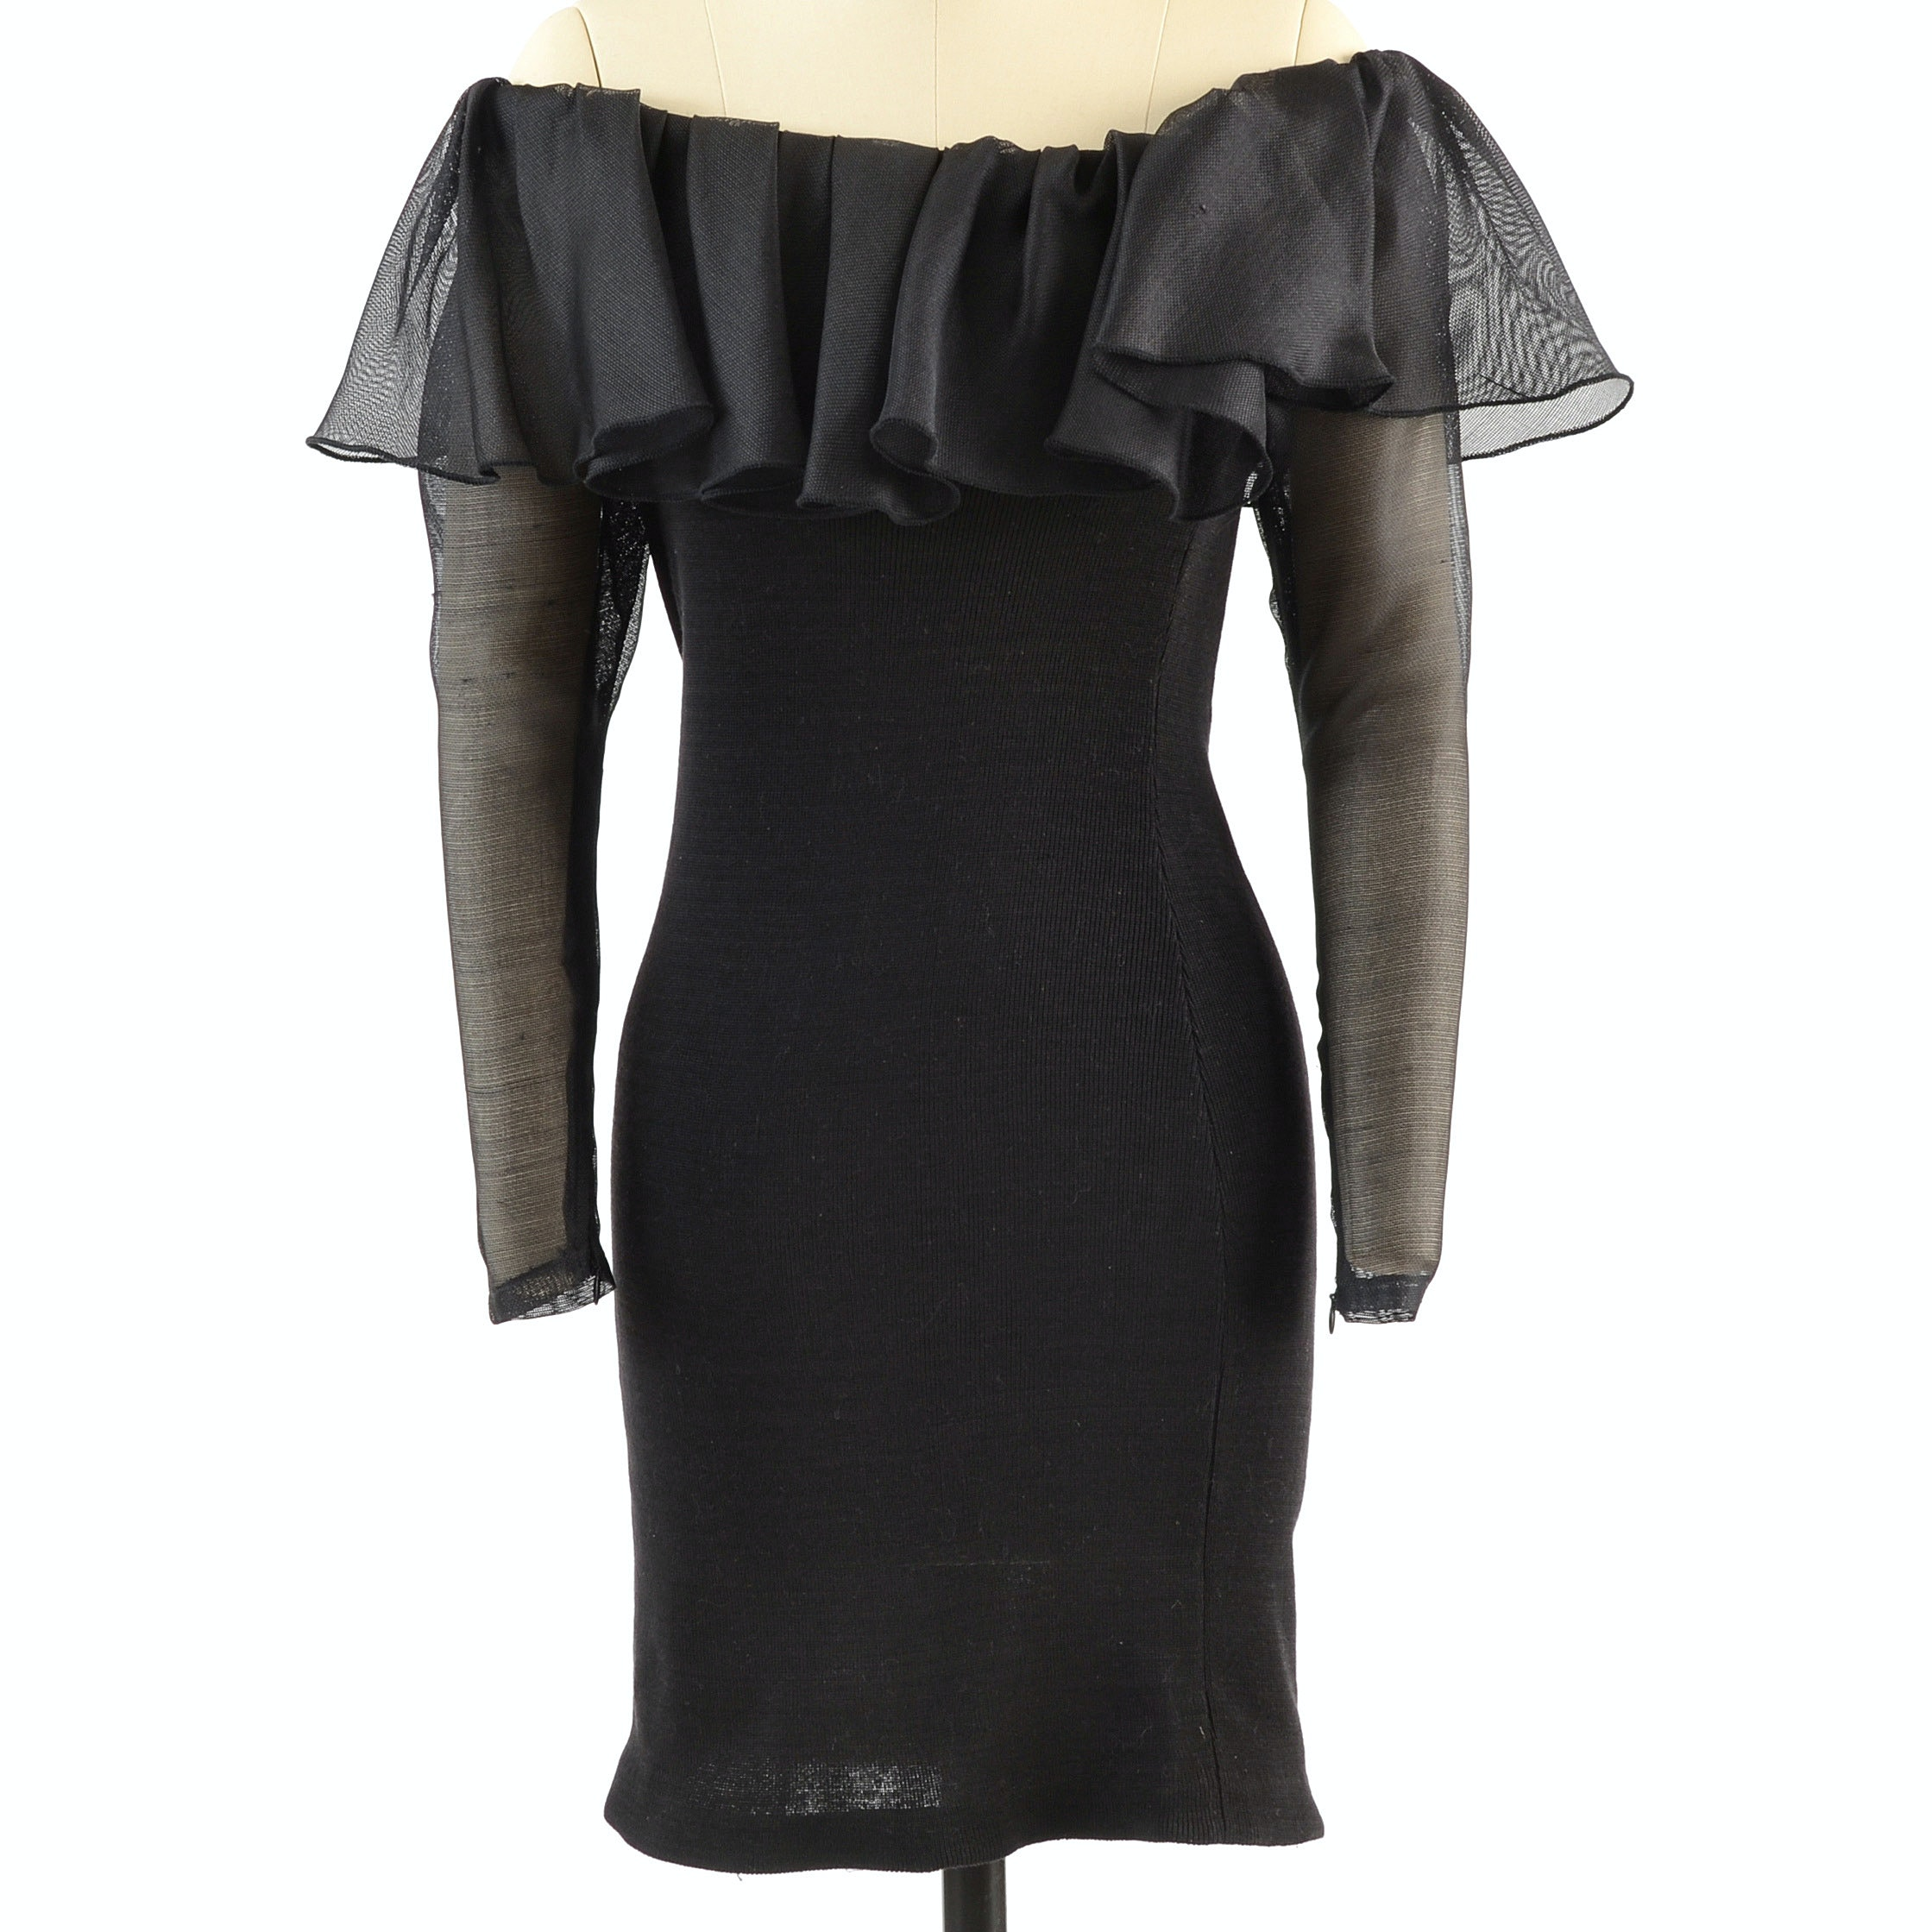 Yves Saint Laurent Rive Gauche Black Knit and Ruffled Mesh Off-The-Shoulder Body Con Dress